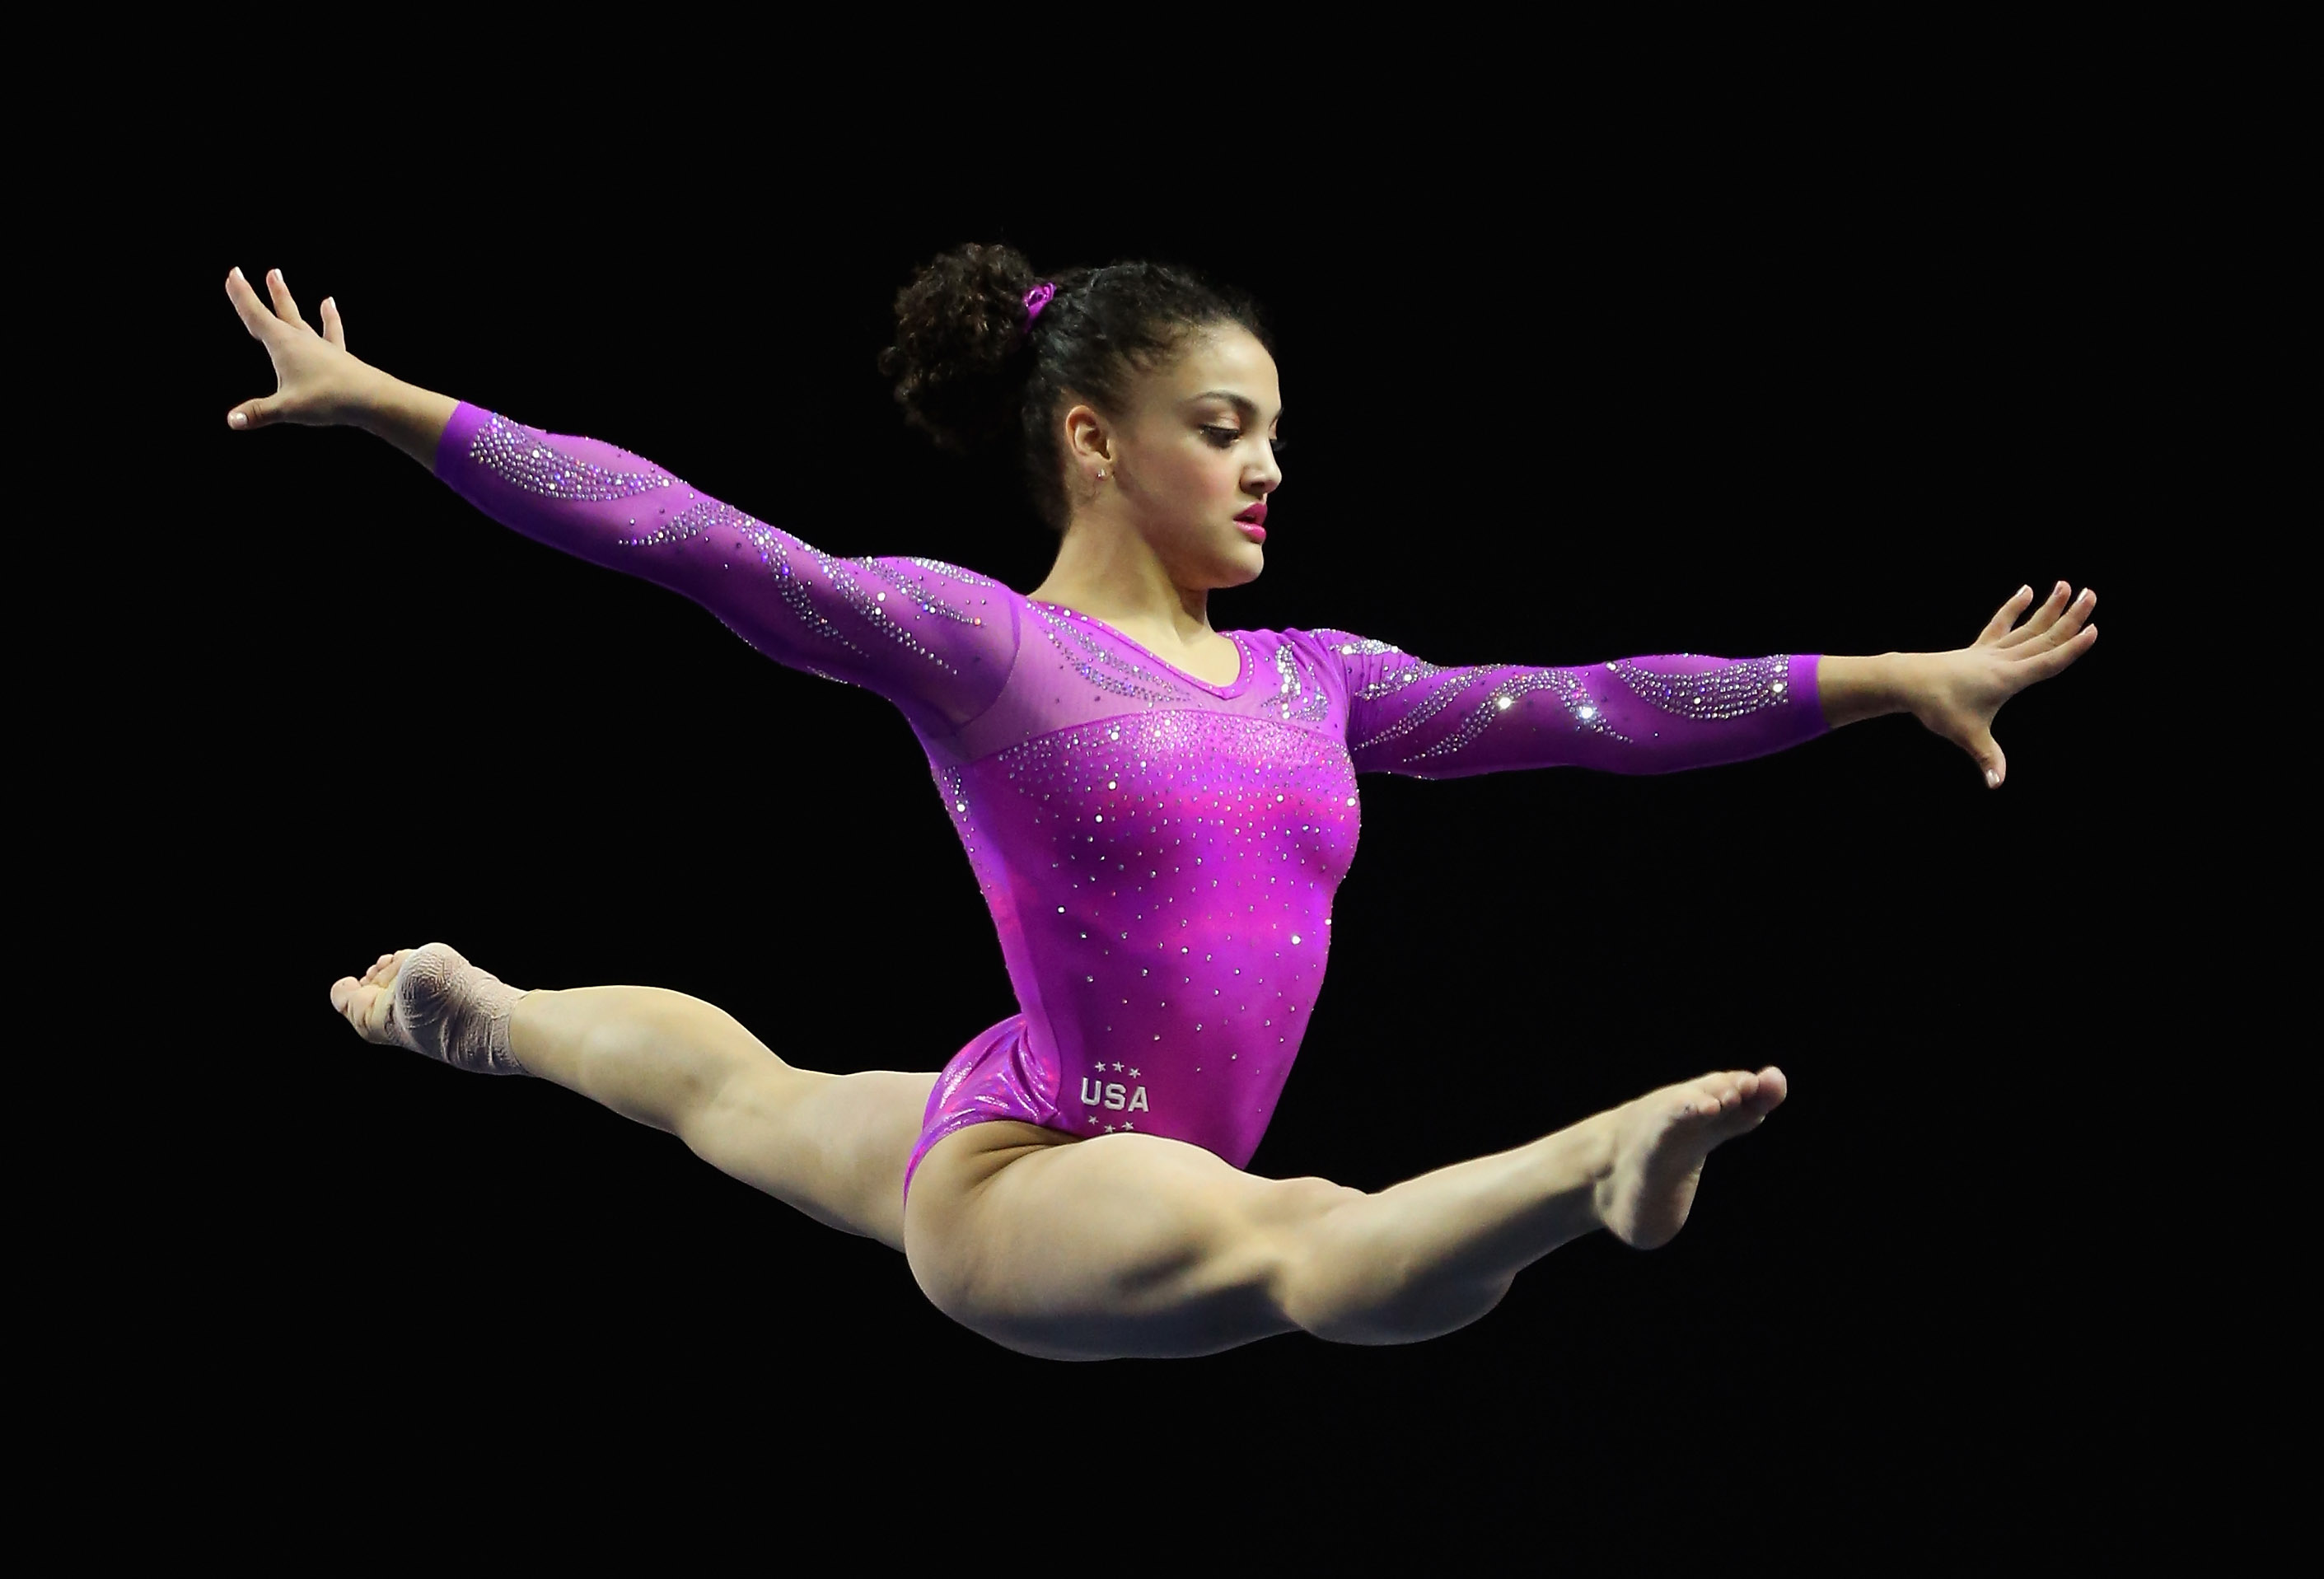 Latina Gymnast Laurie Hernandez Qualifies For The Rio Olympics